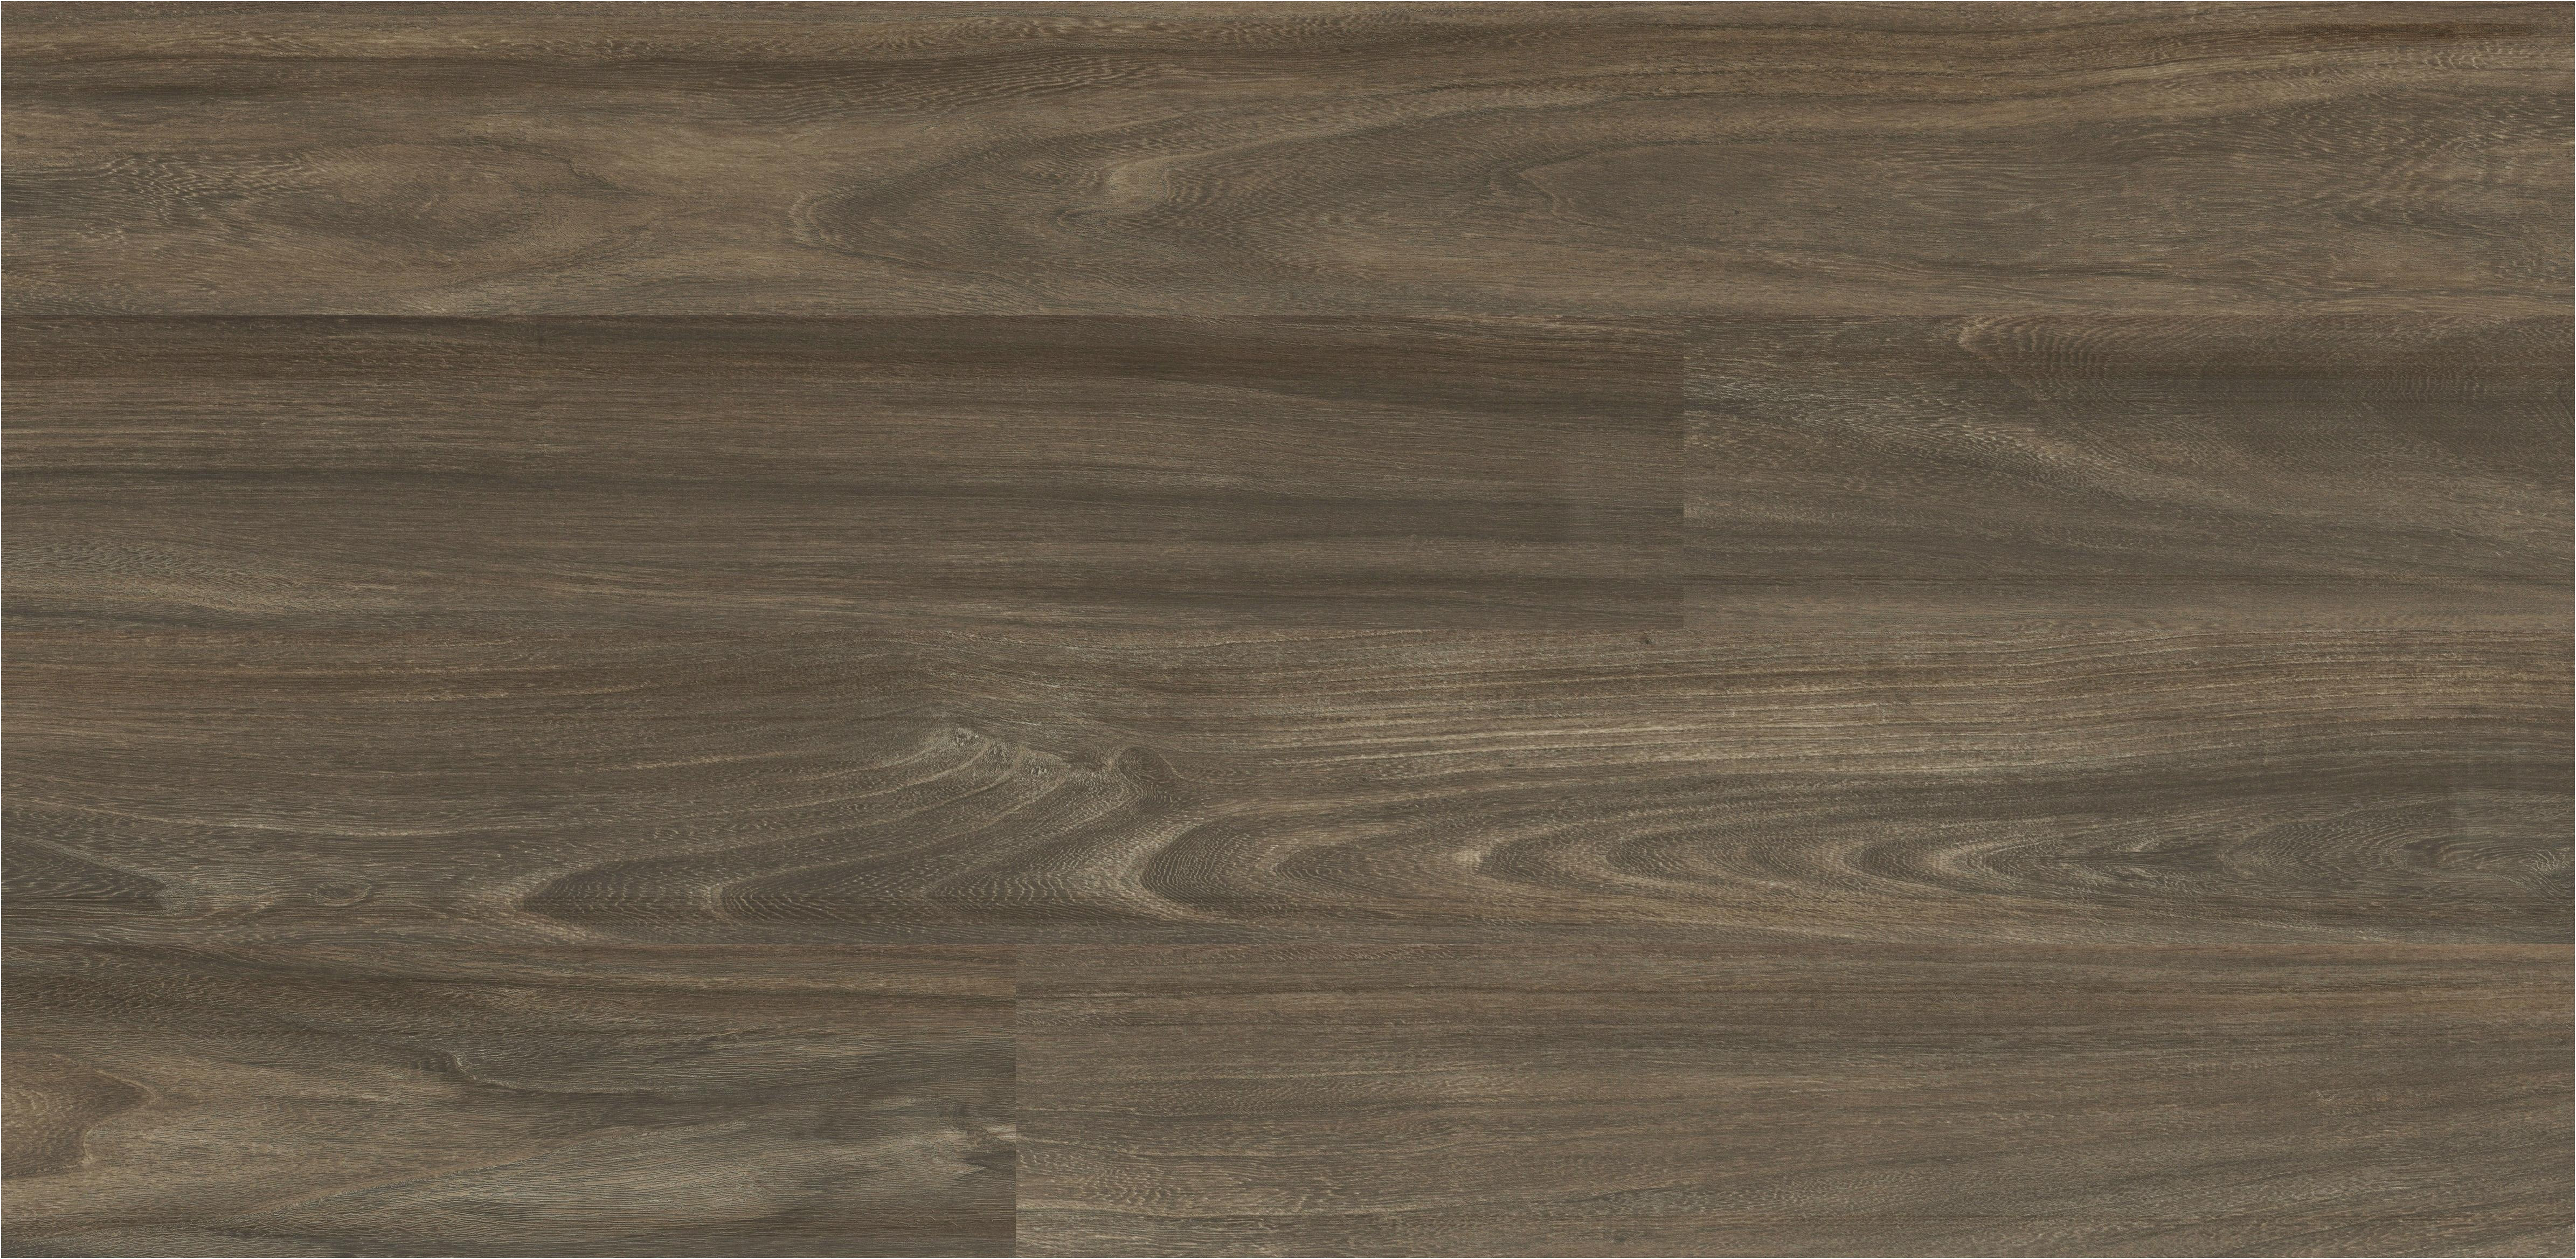 lw hardwood flooring of vinyl flooring vs laminate flooring aged oak 691d roma vinyl with regard to vinyl flooring vs laminate flooring luxury vinyl flooring vs laminate collection liberty plank big leaf